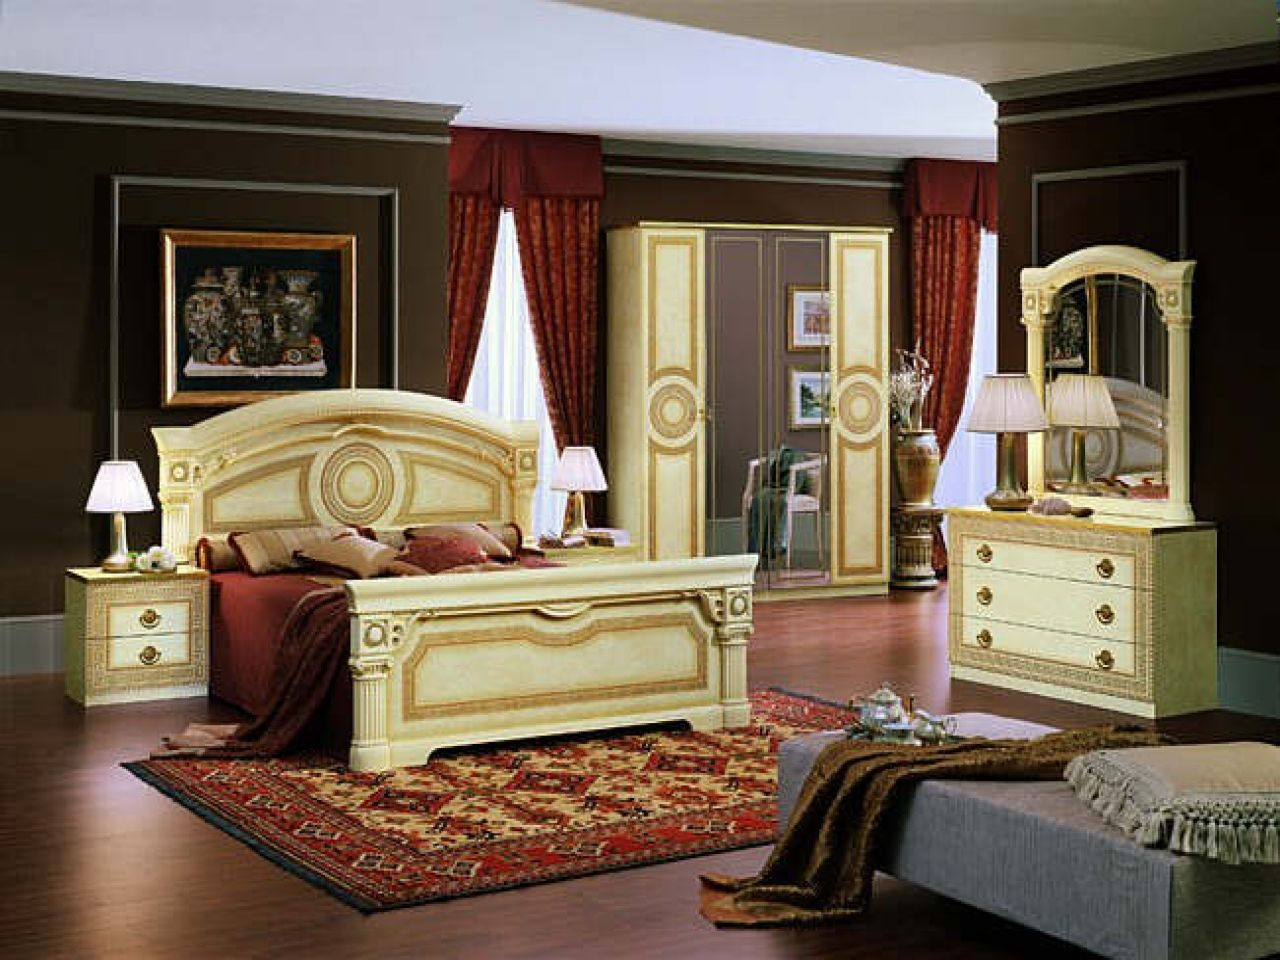 Italian Furniture Bedroom Set. Italian Bedroom Furniture  BEDROOM FURNITURE Pinterest bedroom furniture Bedrooms and ideas